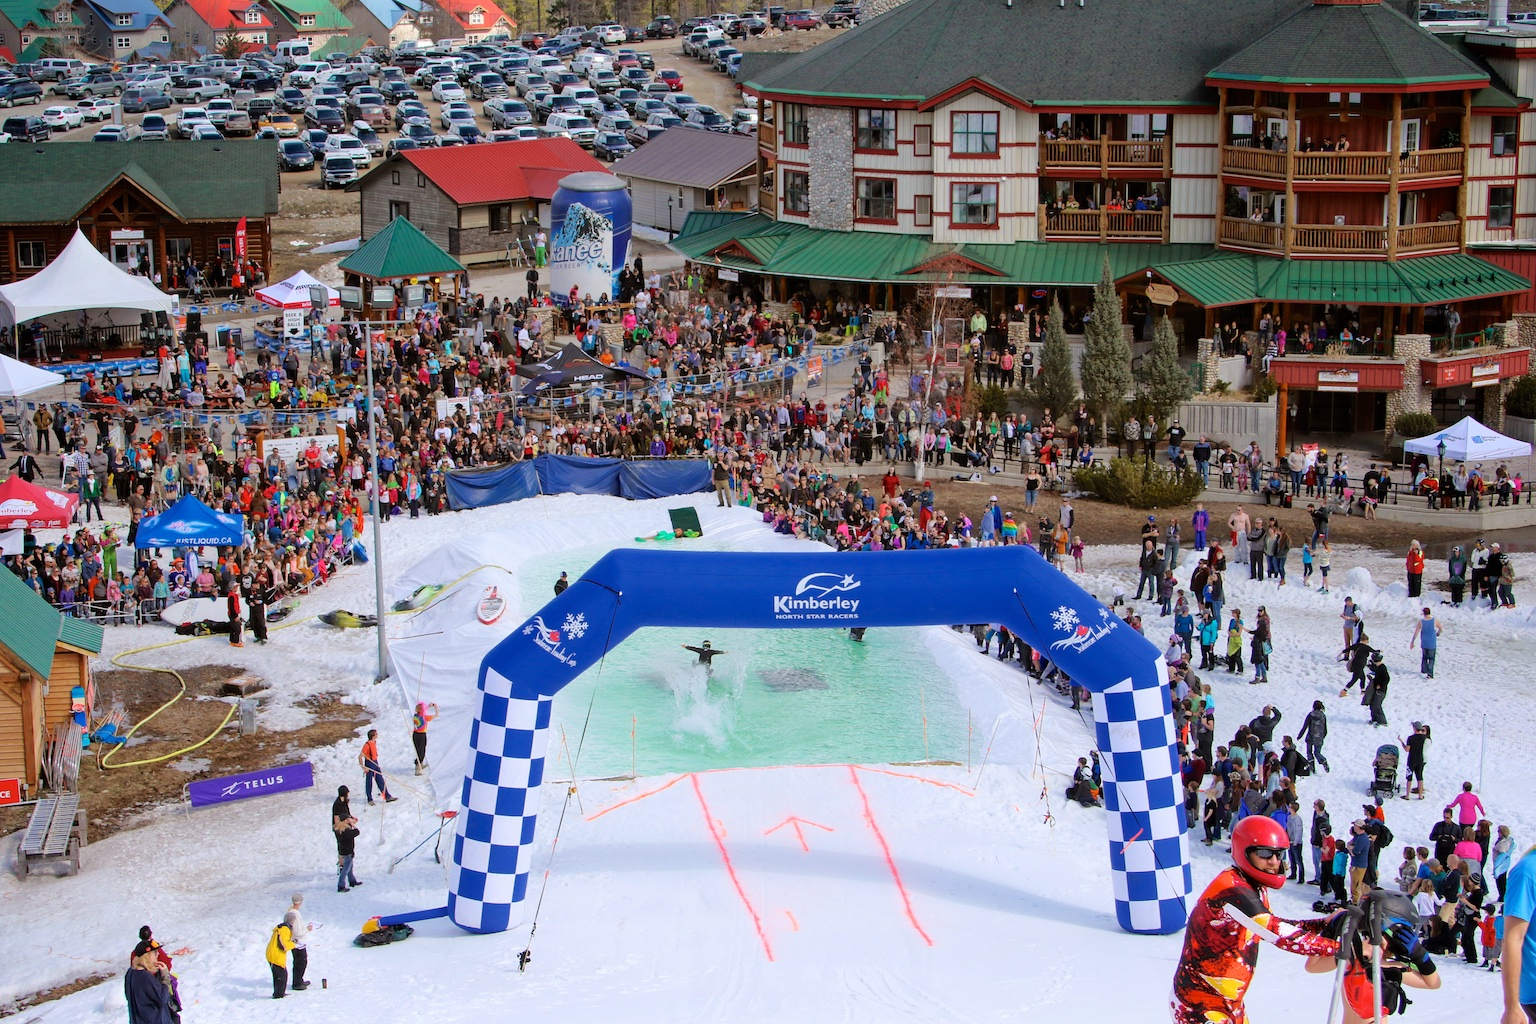 Kimberley, Panorama ski resorts set for final weekend